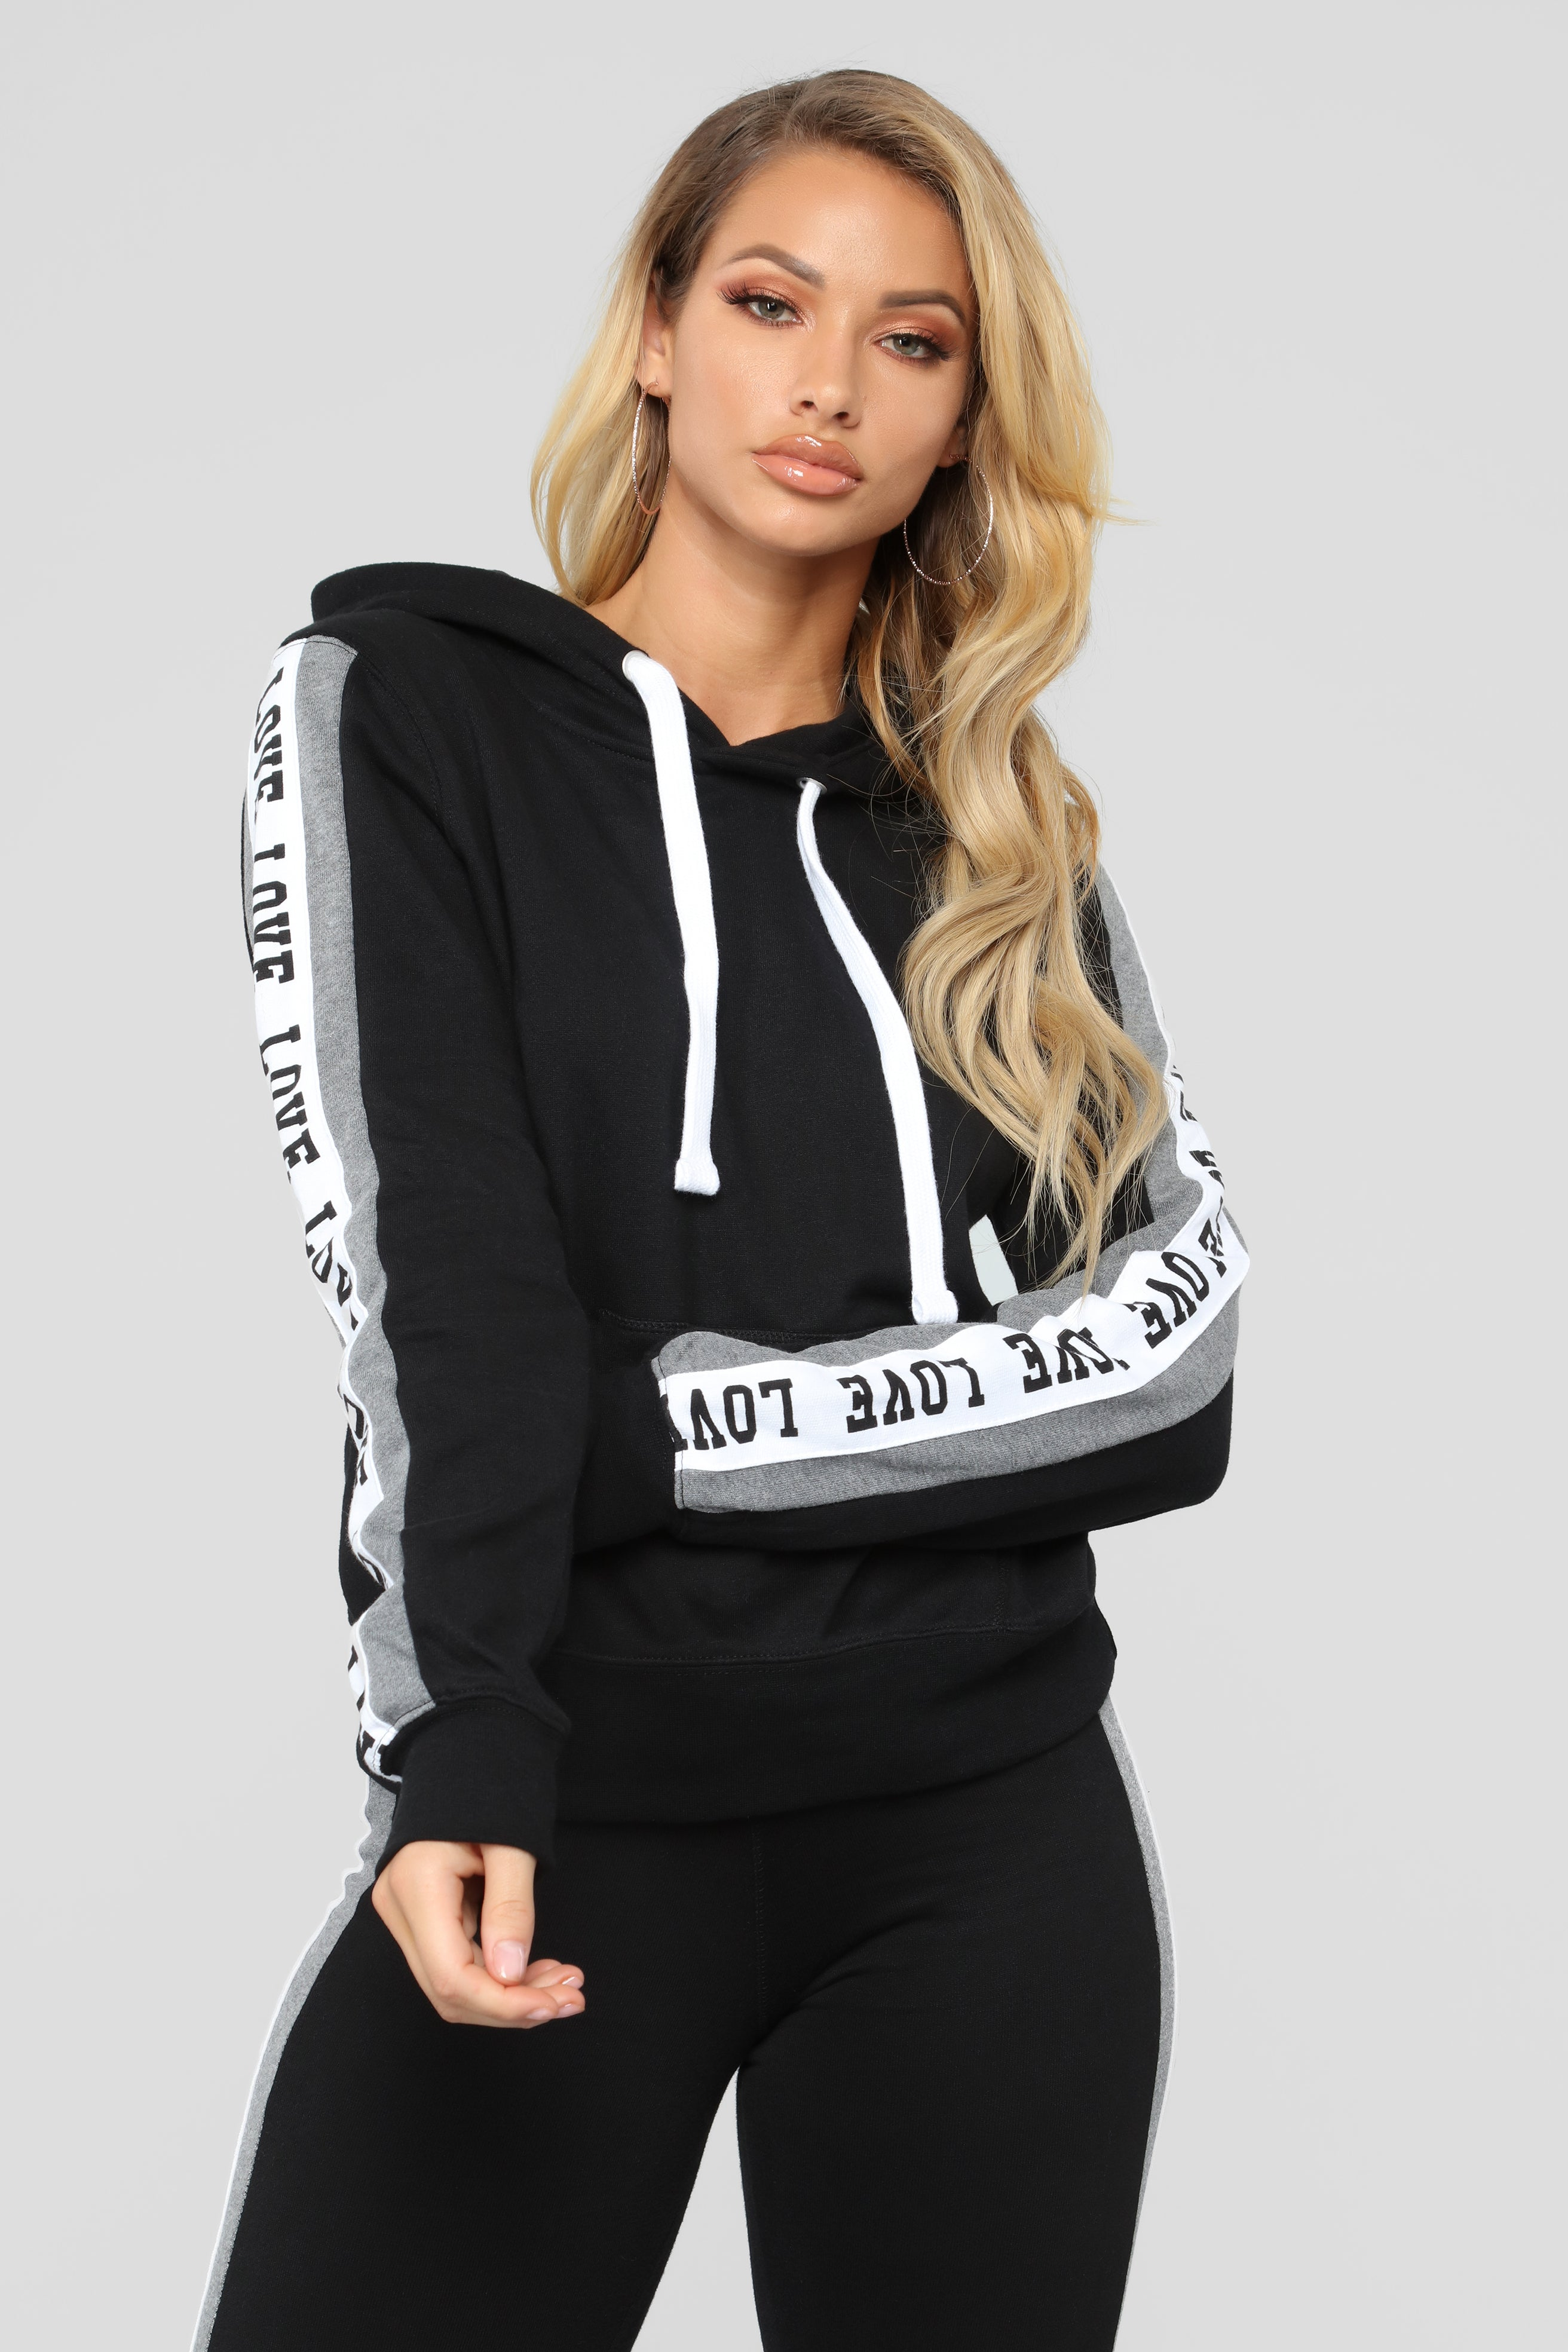 IF Leilani Cant FIX IT NO ONE CAN Hoodie Premium Shirt Black